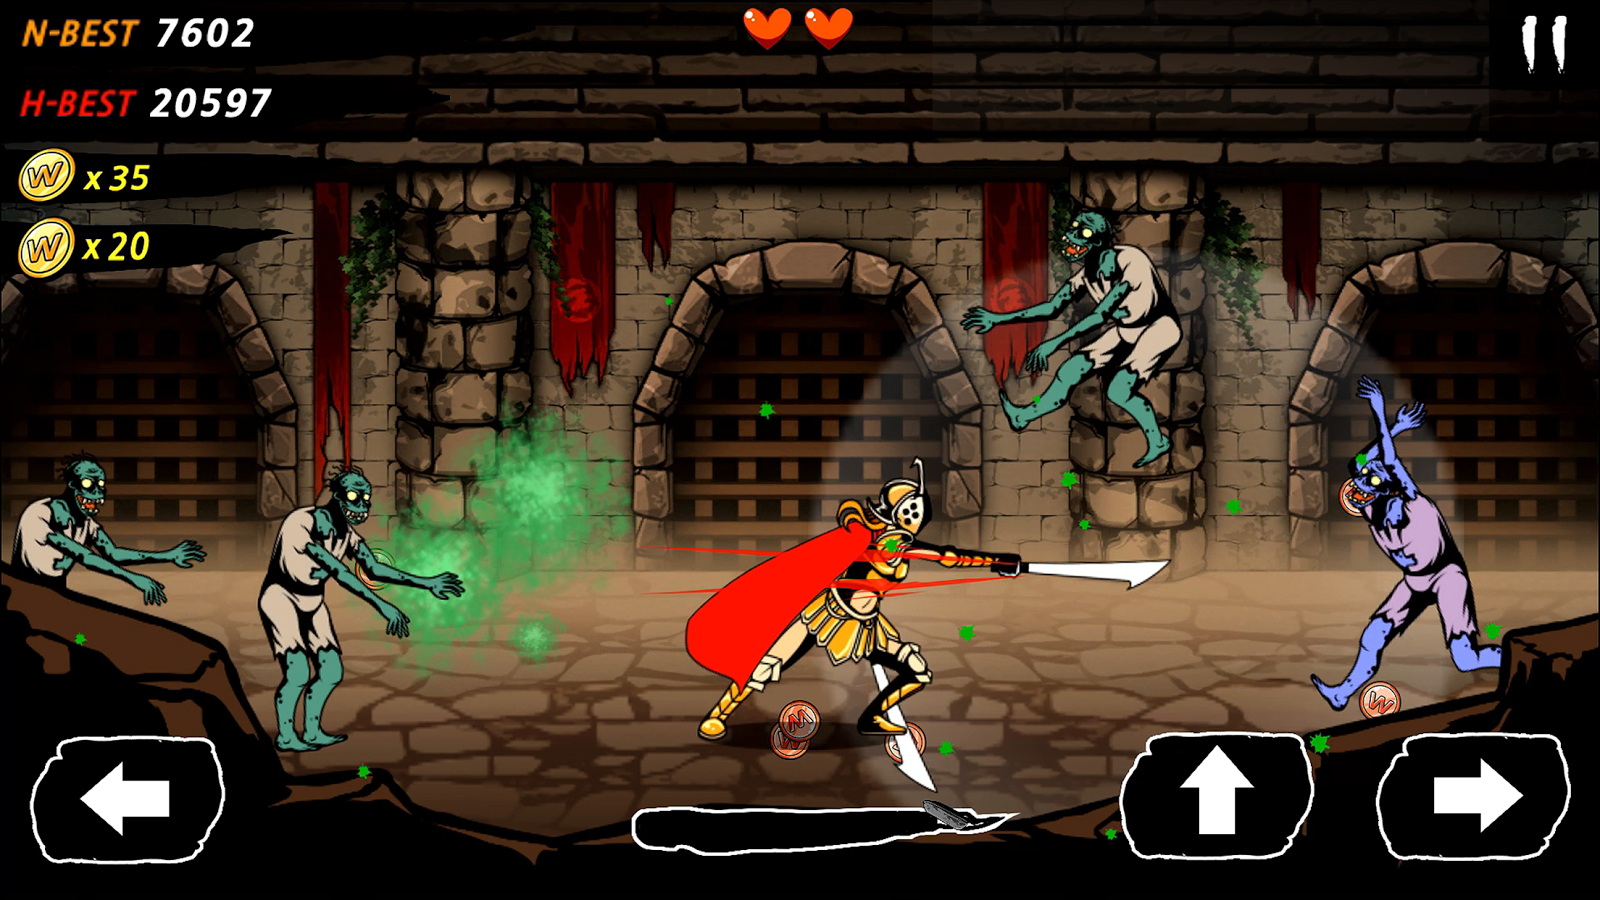 World Of Blade : Zombie Slasher Apk